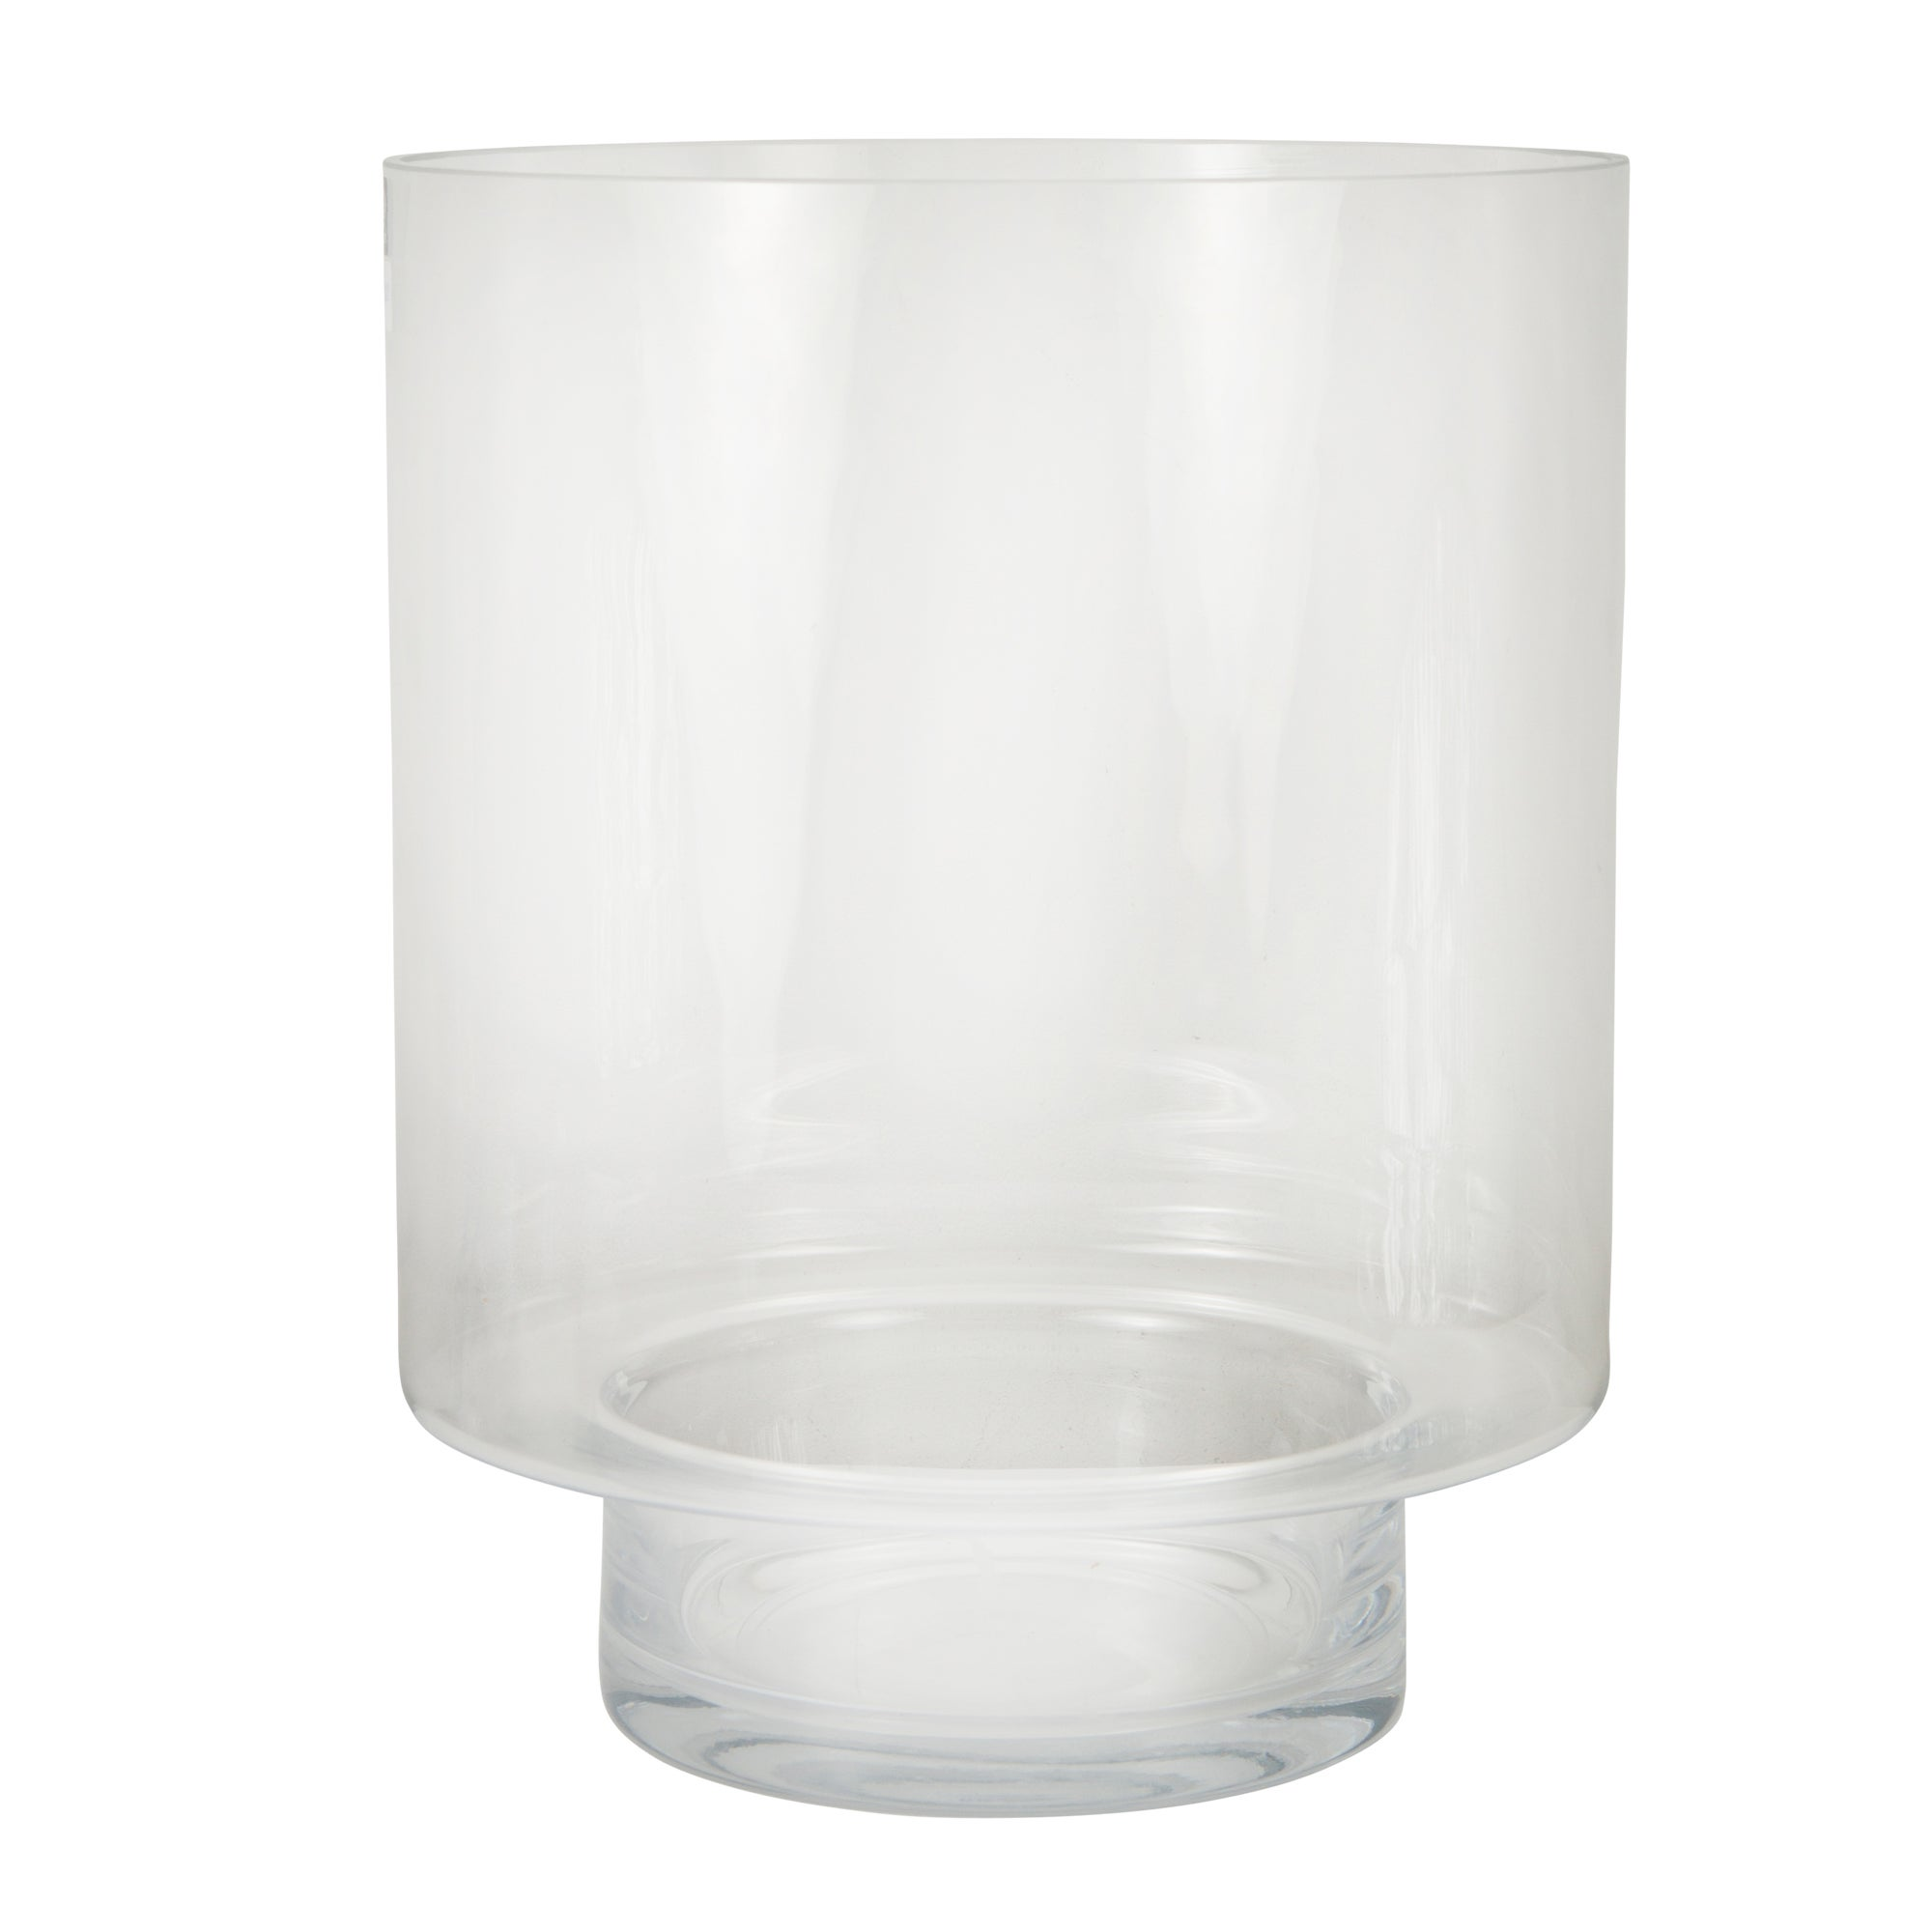 Photo of Elements extra large glass hurricane clear